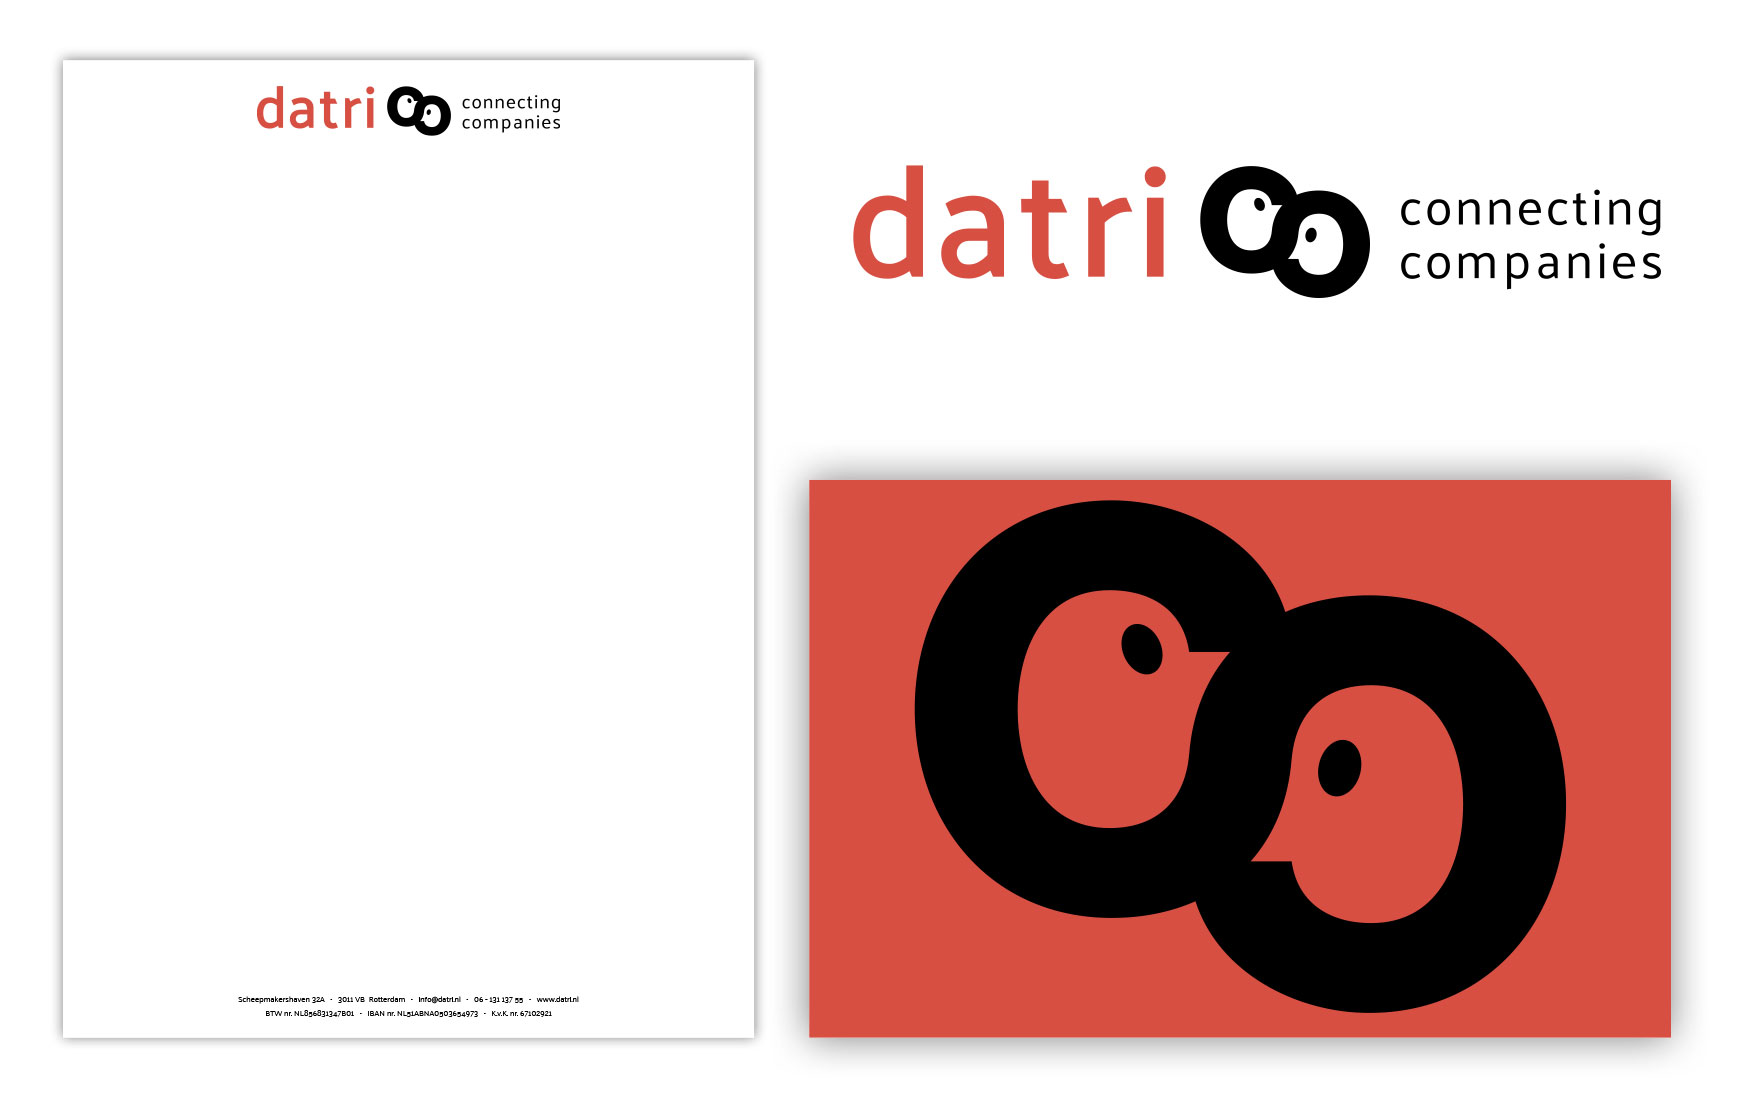 datri-connecting-companies